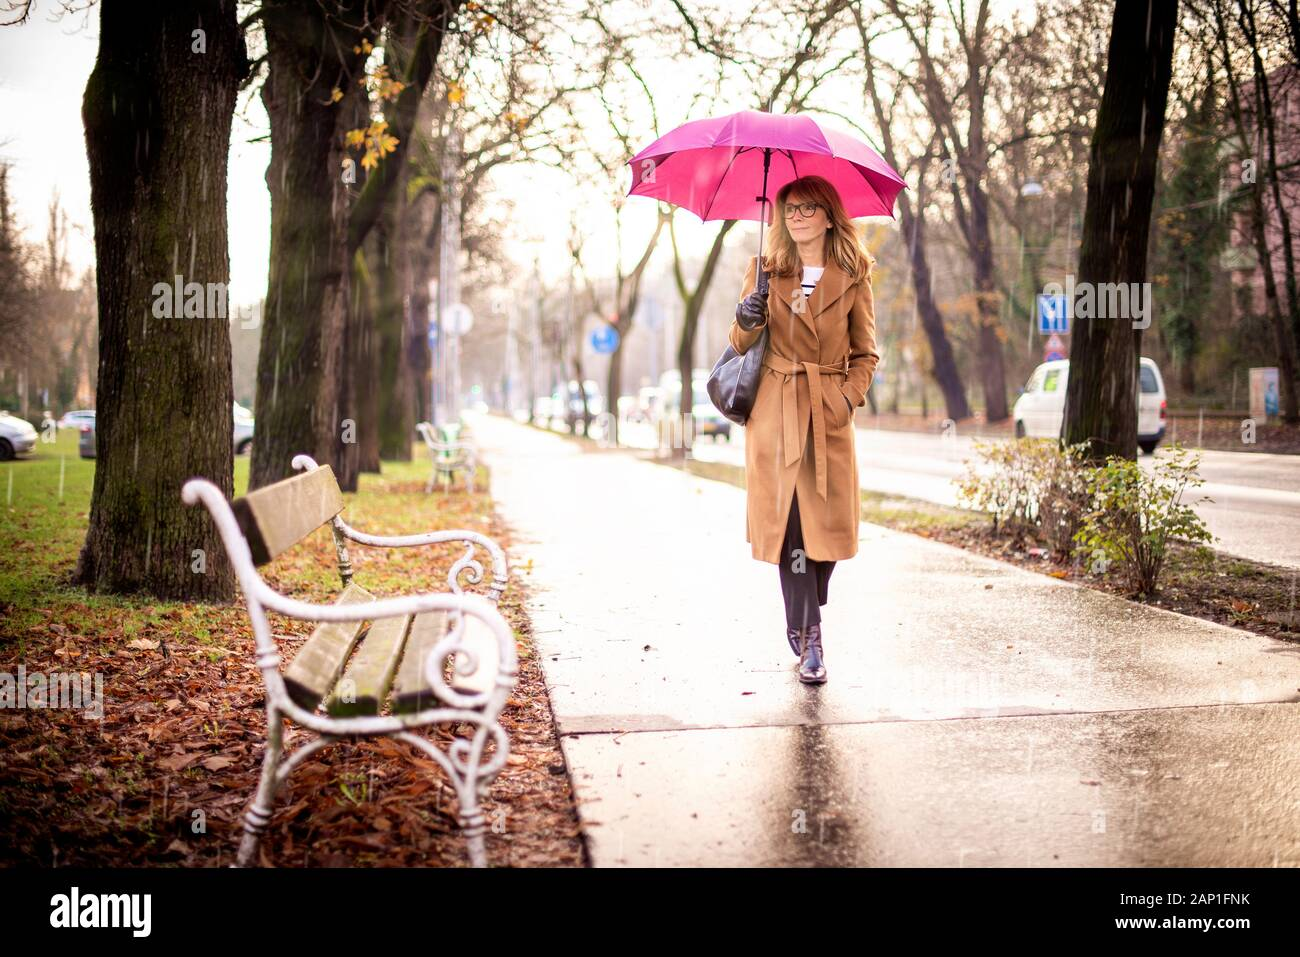 Full length shot of mature woman holding umbrella while walking on the street on a rainy day. Stock Photo